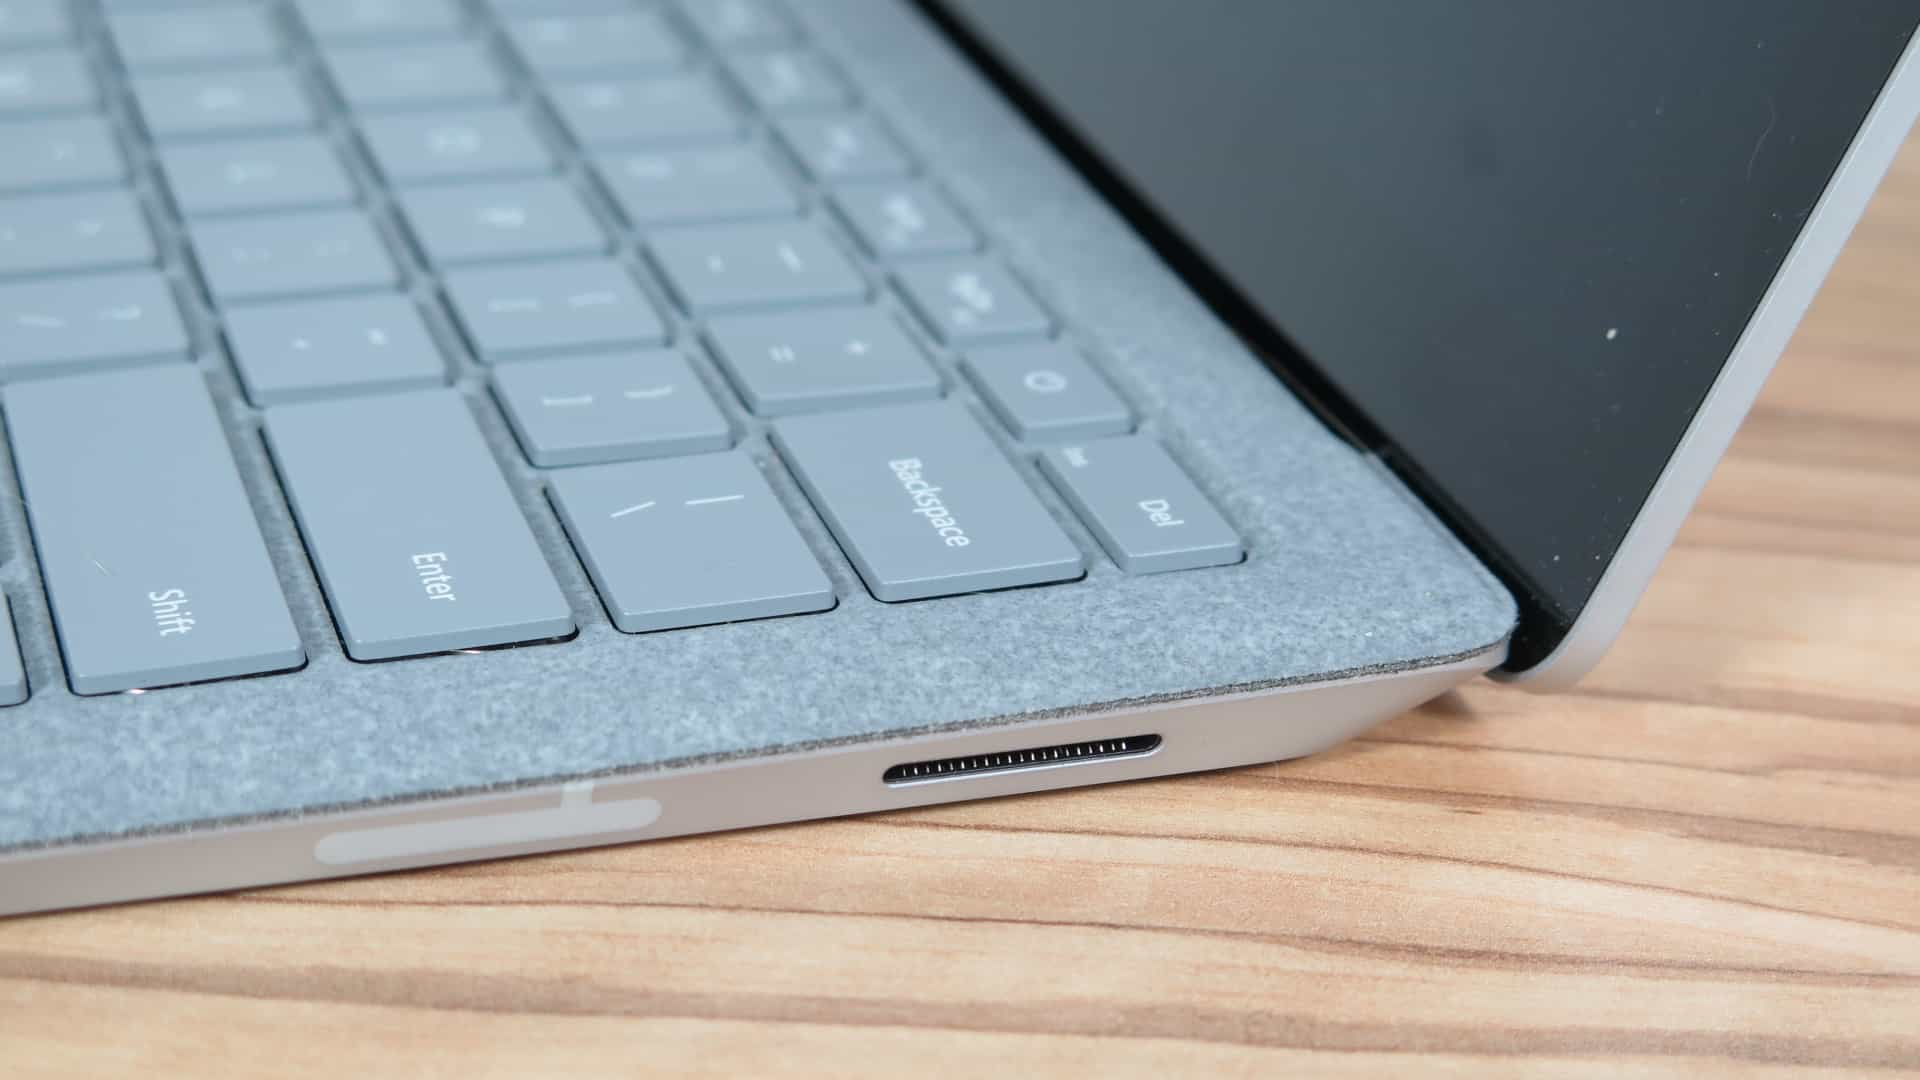 Microsoft Surface Laptop 2 5